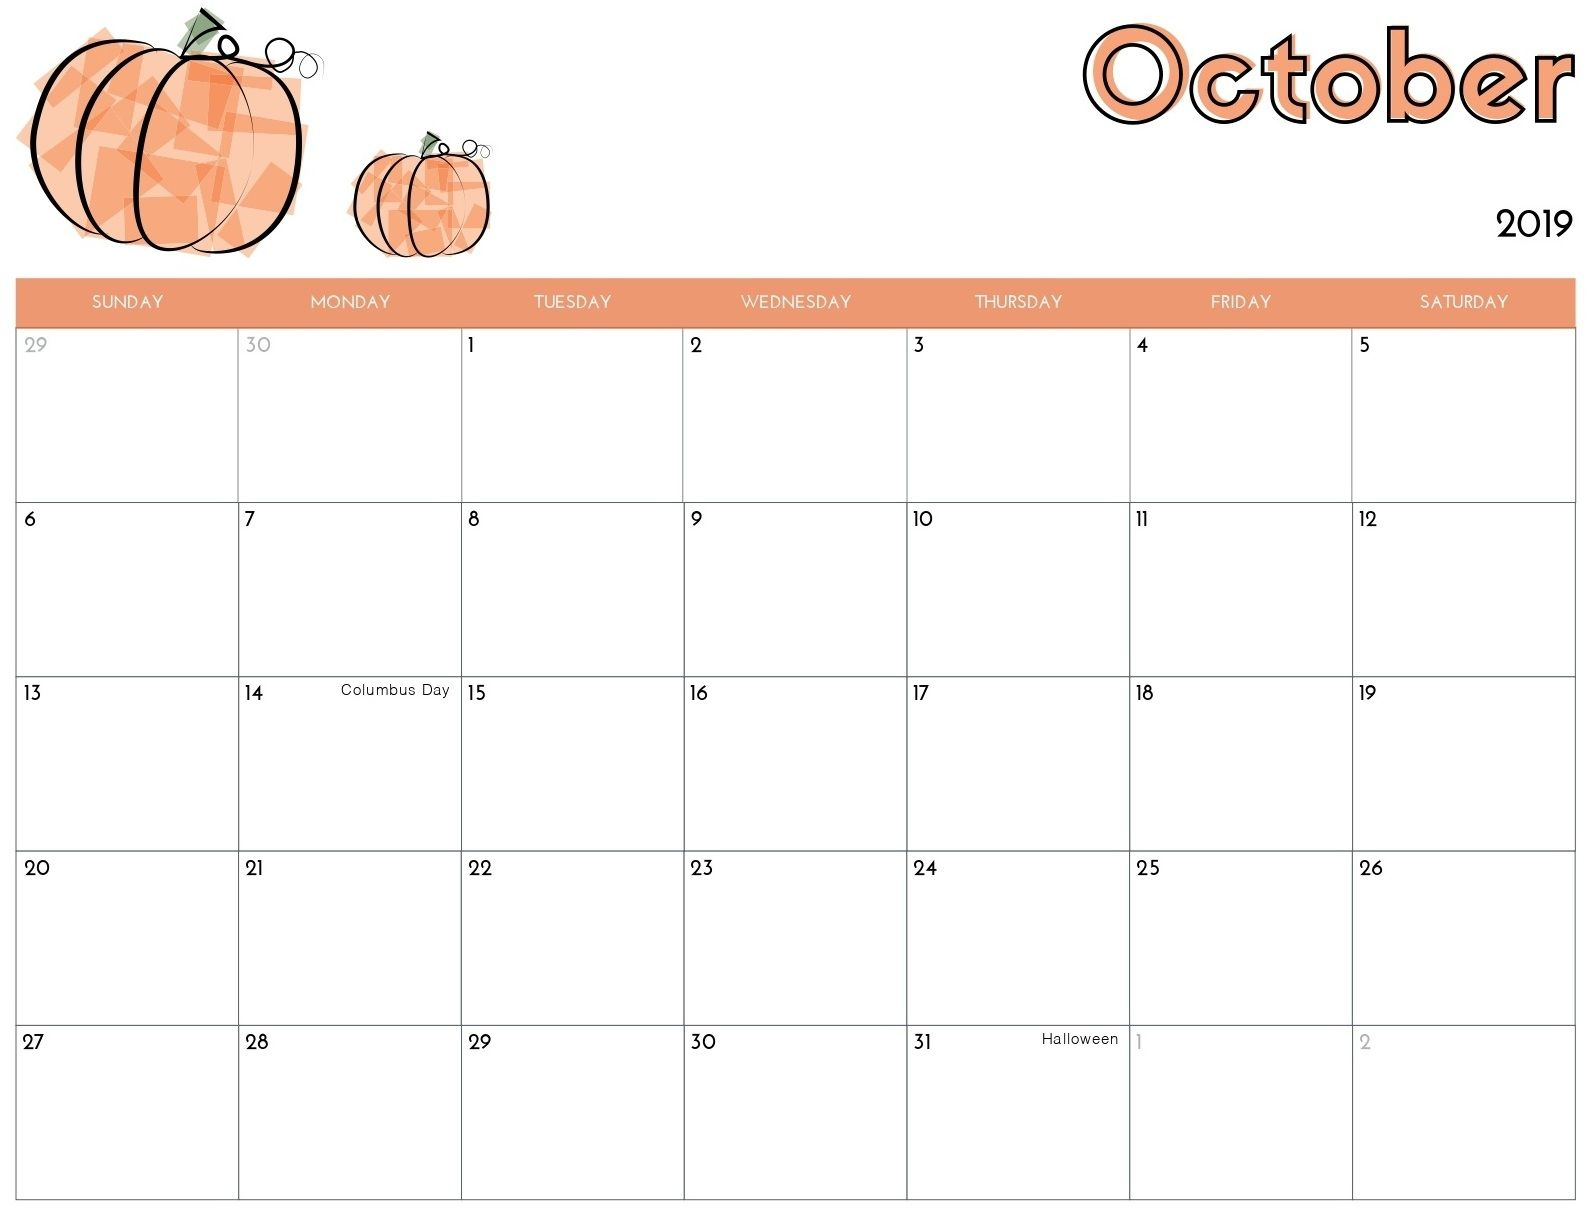 Online Calendar For October 2019 Template Magic Calendar 2019